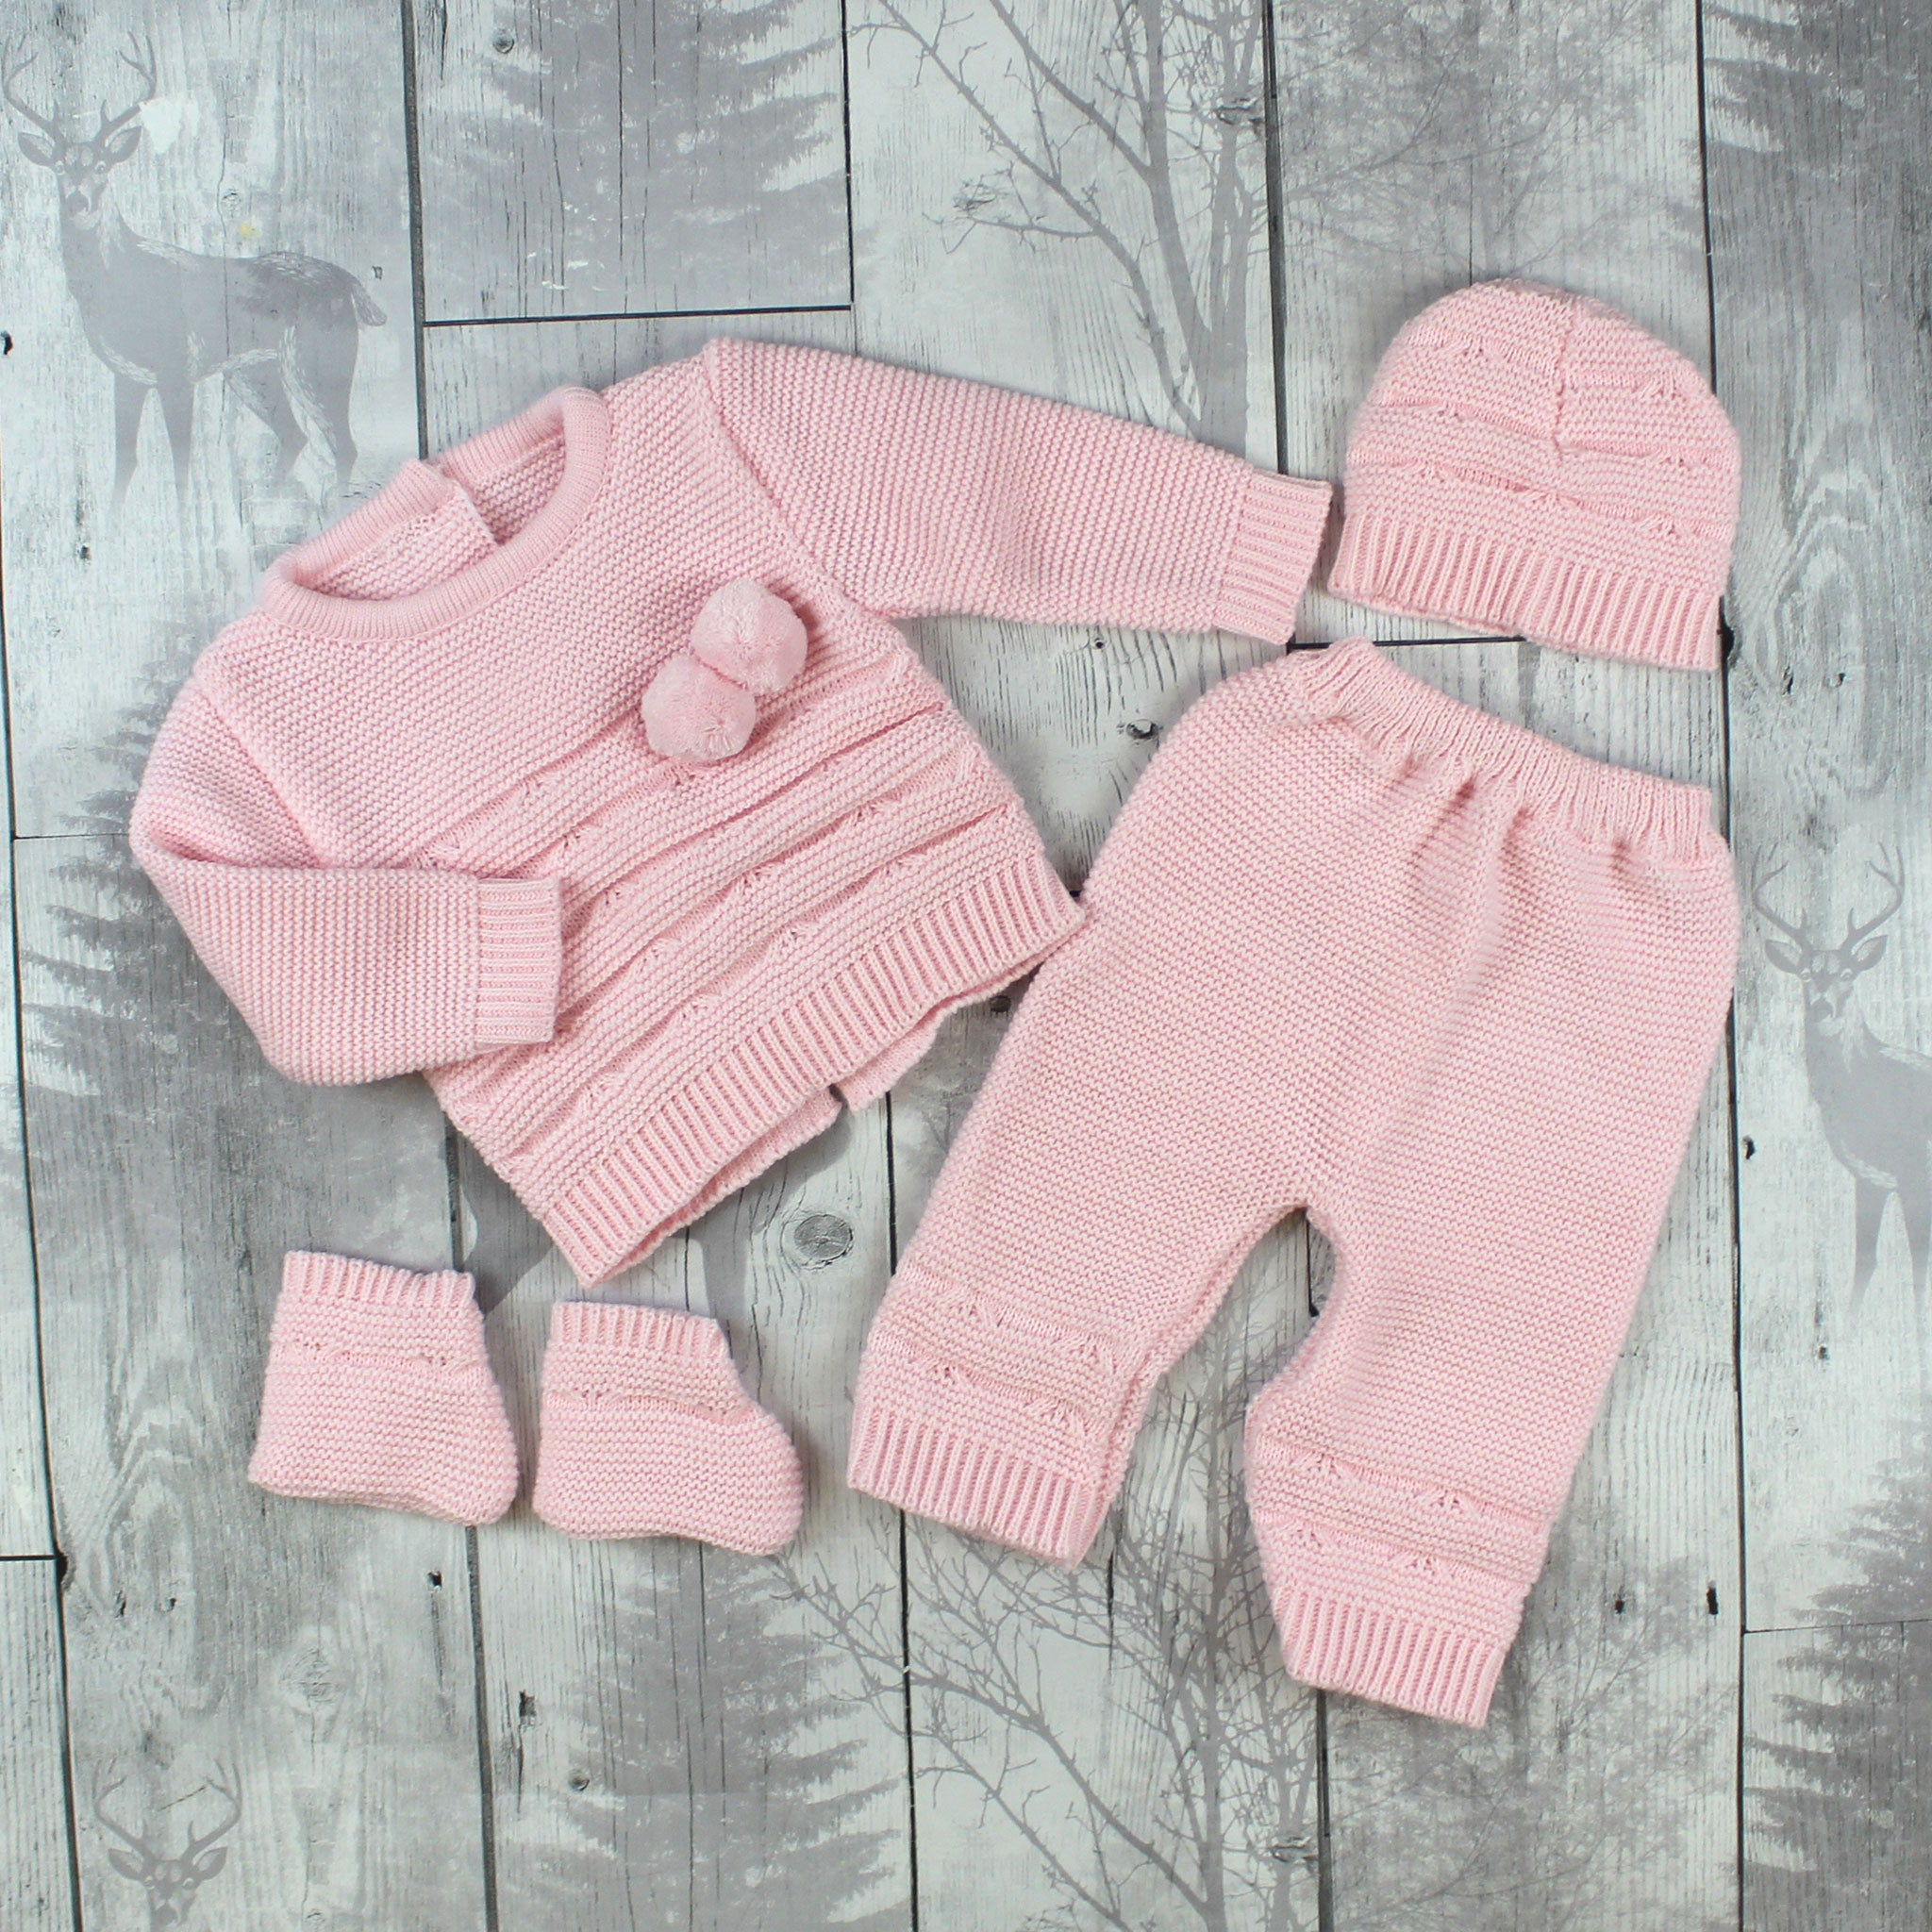 Knitted Baby Girl Outfit Pink Top, Trousers, Booties and Hat